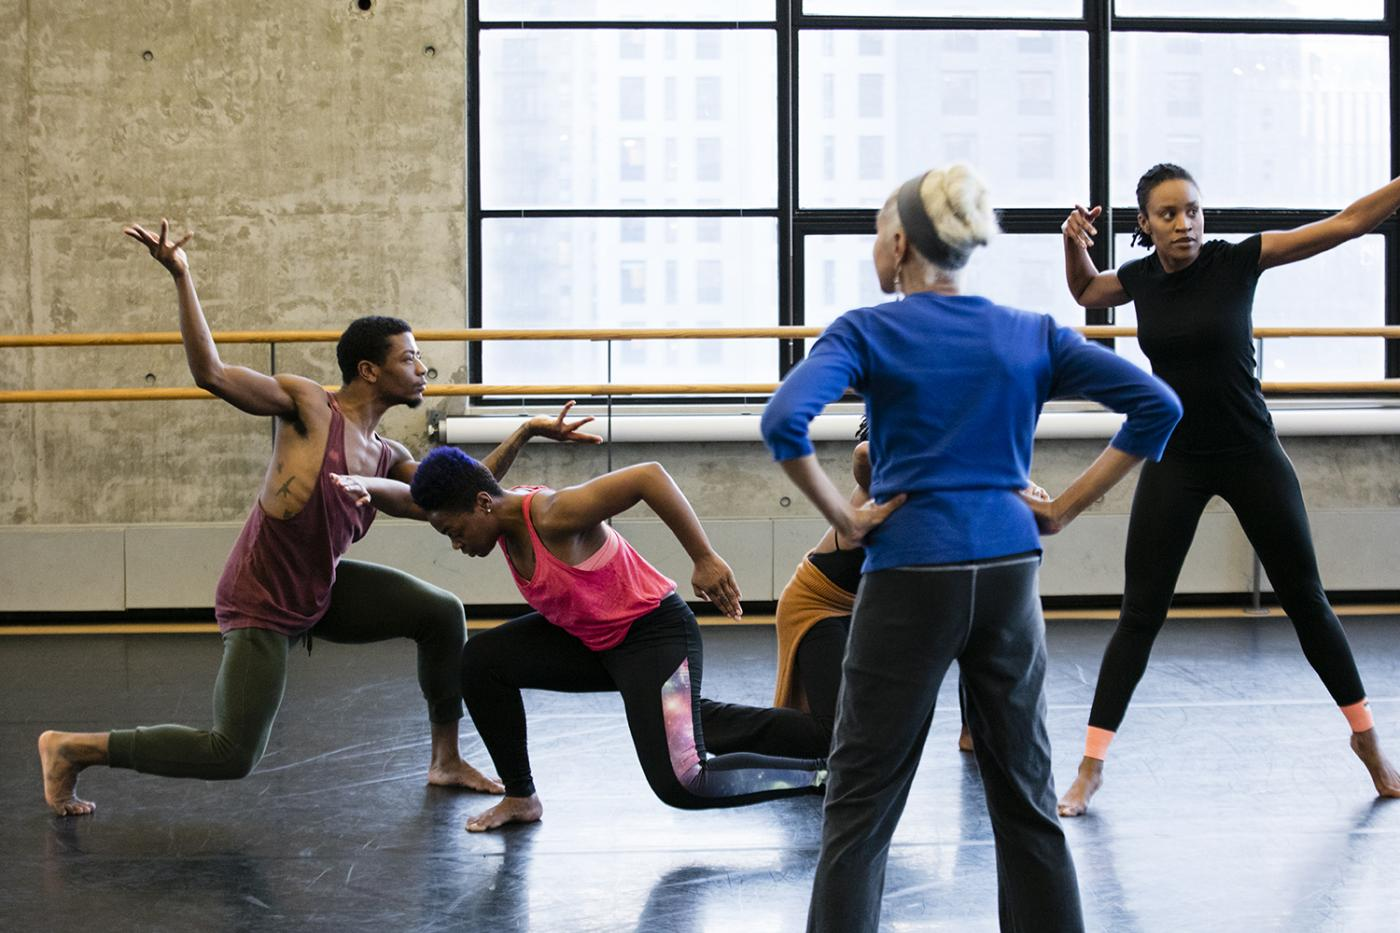 In a dance studio, four black dancers move in sweats.